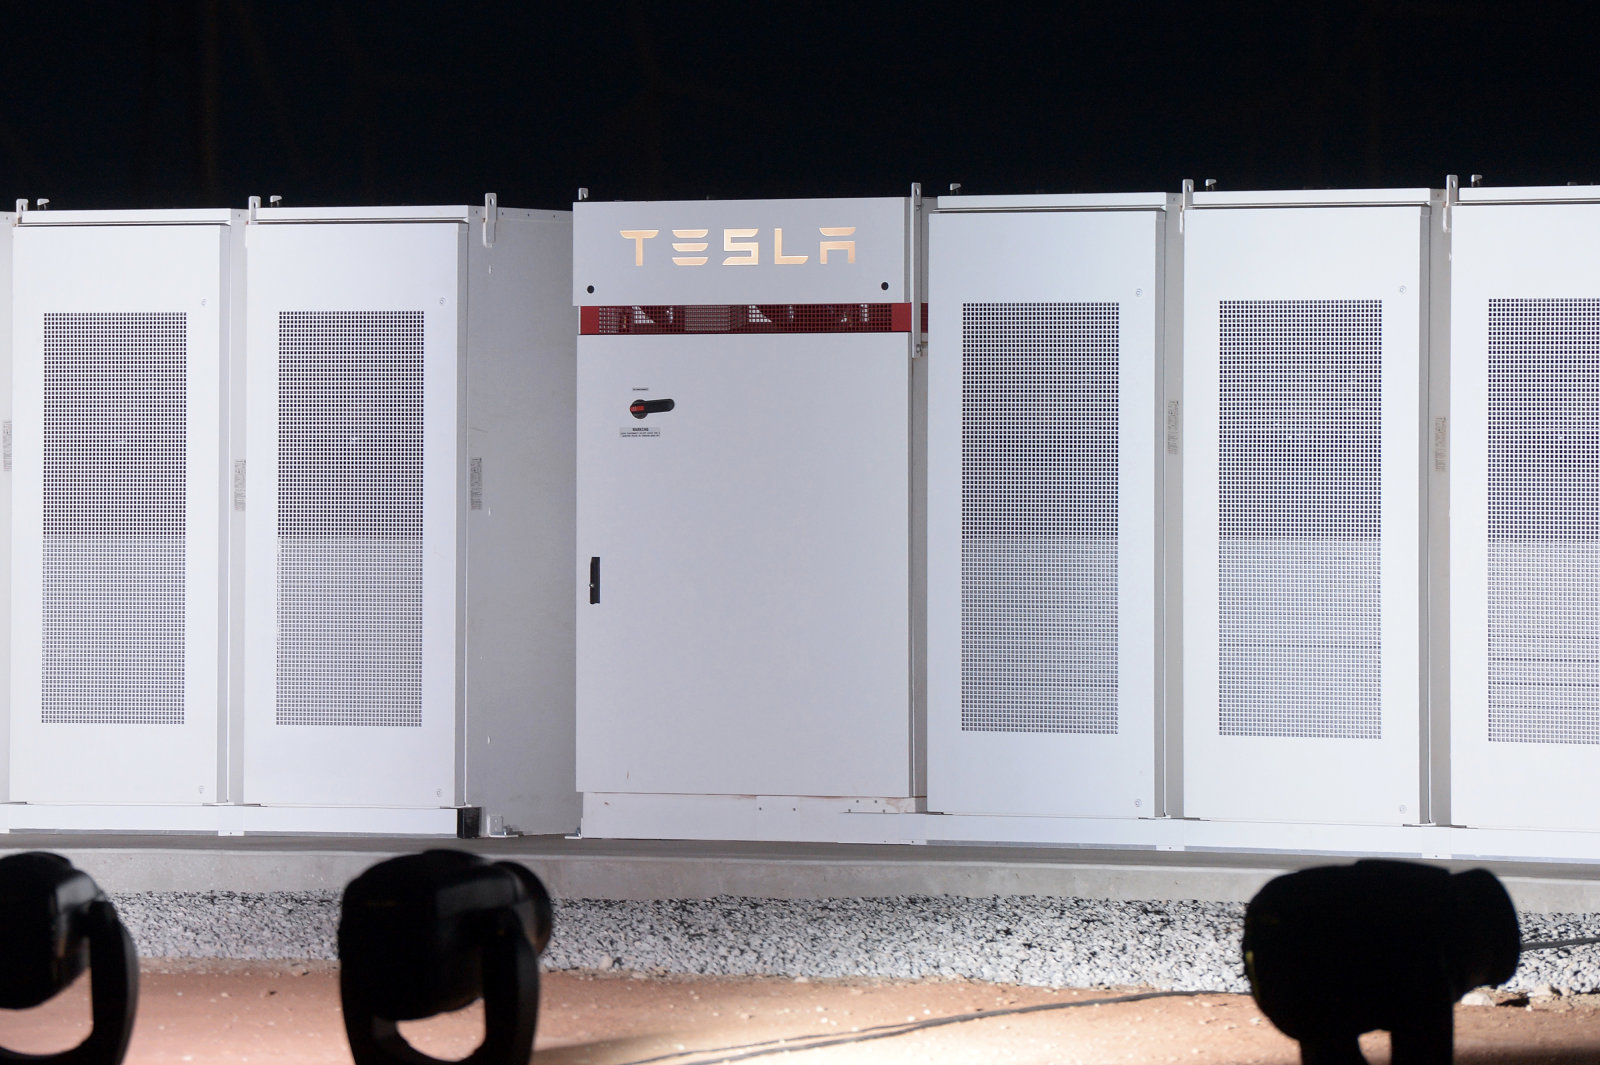 TeslaInc. Powerpacks that will be used to form theworld's largestlithium-ionbattery stand on display at the Hornsdale wind farm, operated by Neoen SAS, near Jamestown, South Australia, on Friday, Sept. 29, 2017. Tesla Chief Executive Officer Elon Musk descended on South Australia on Friday to unveil progress on a giant battery seen critical to averting crippling powershortages in the state. Photographer: Carla Gottgens/Bloomberg via Getty Images